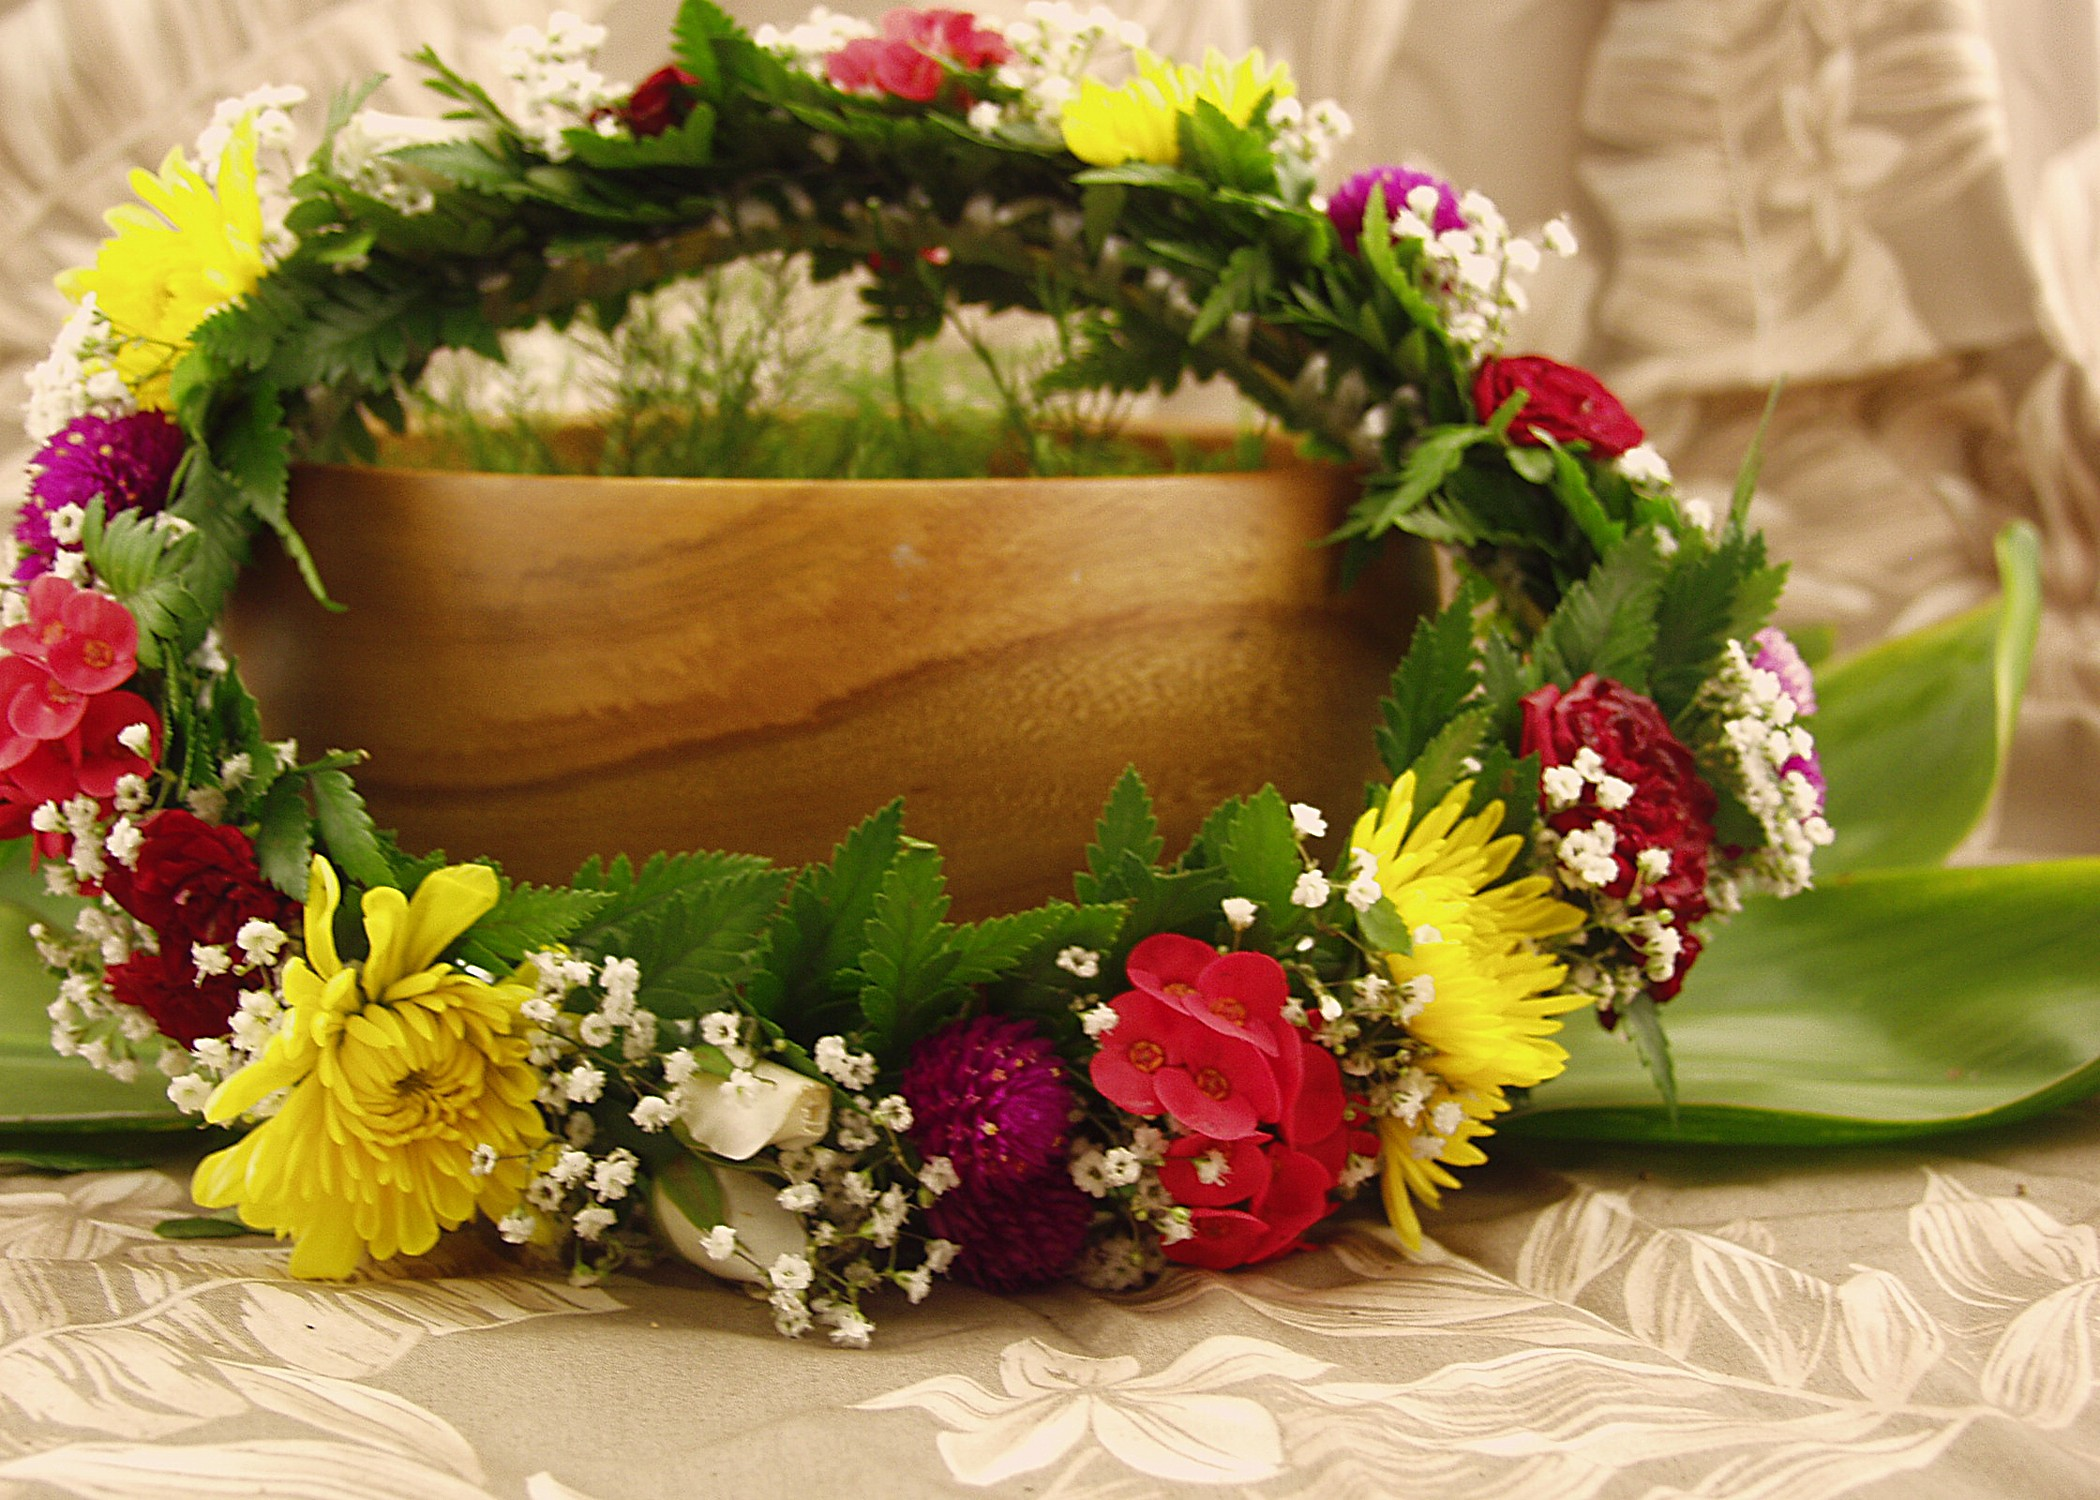 Traditional Hawaiian Wedding Gifts: Made In Hawaii With Local Flowers And